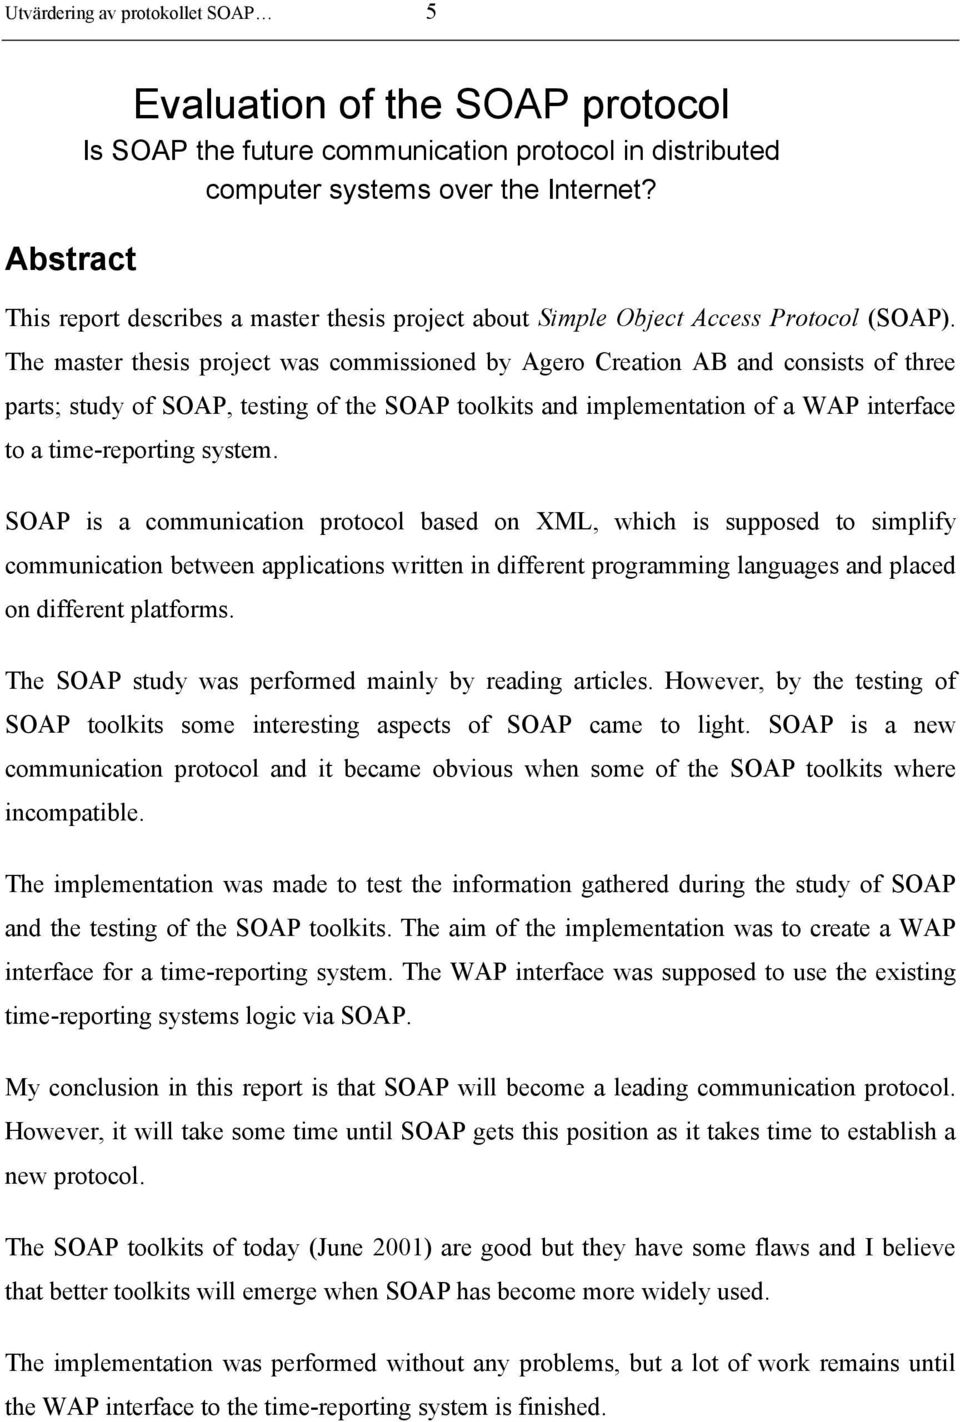 The master thesis project was commissioned by Agero Creation AB and consists of three parts; study of SOAP, testing of the SOAP toolkits and implementation of a WAP interface to a time-reporting